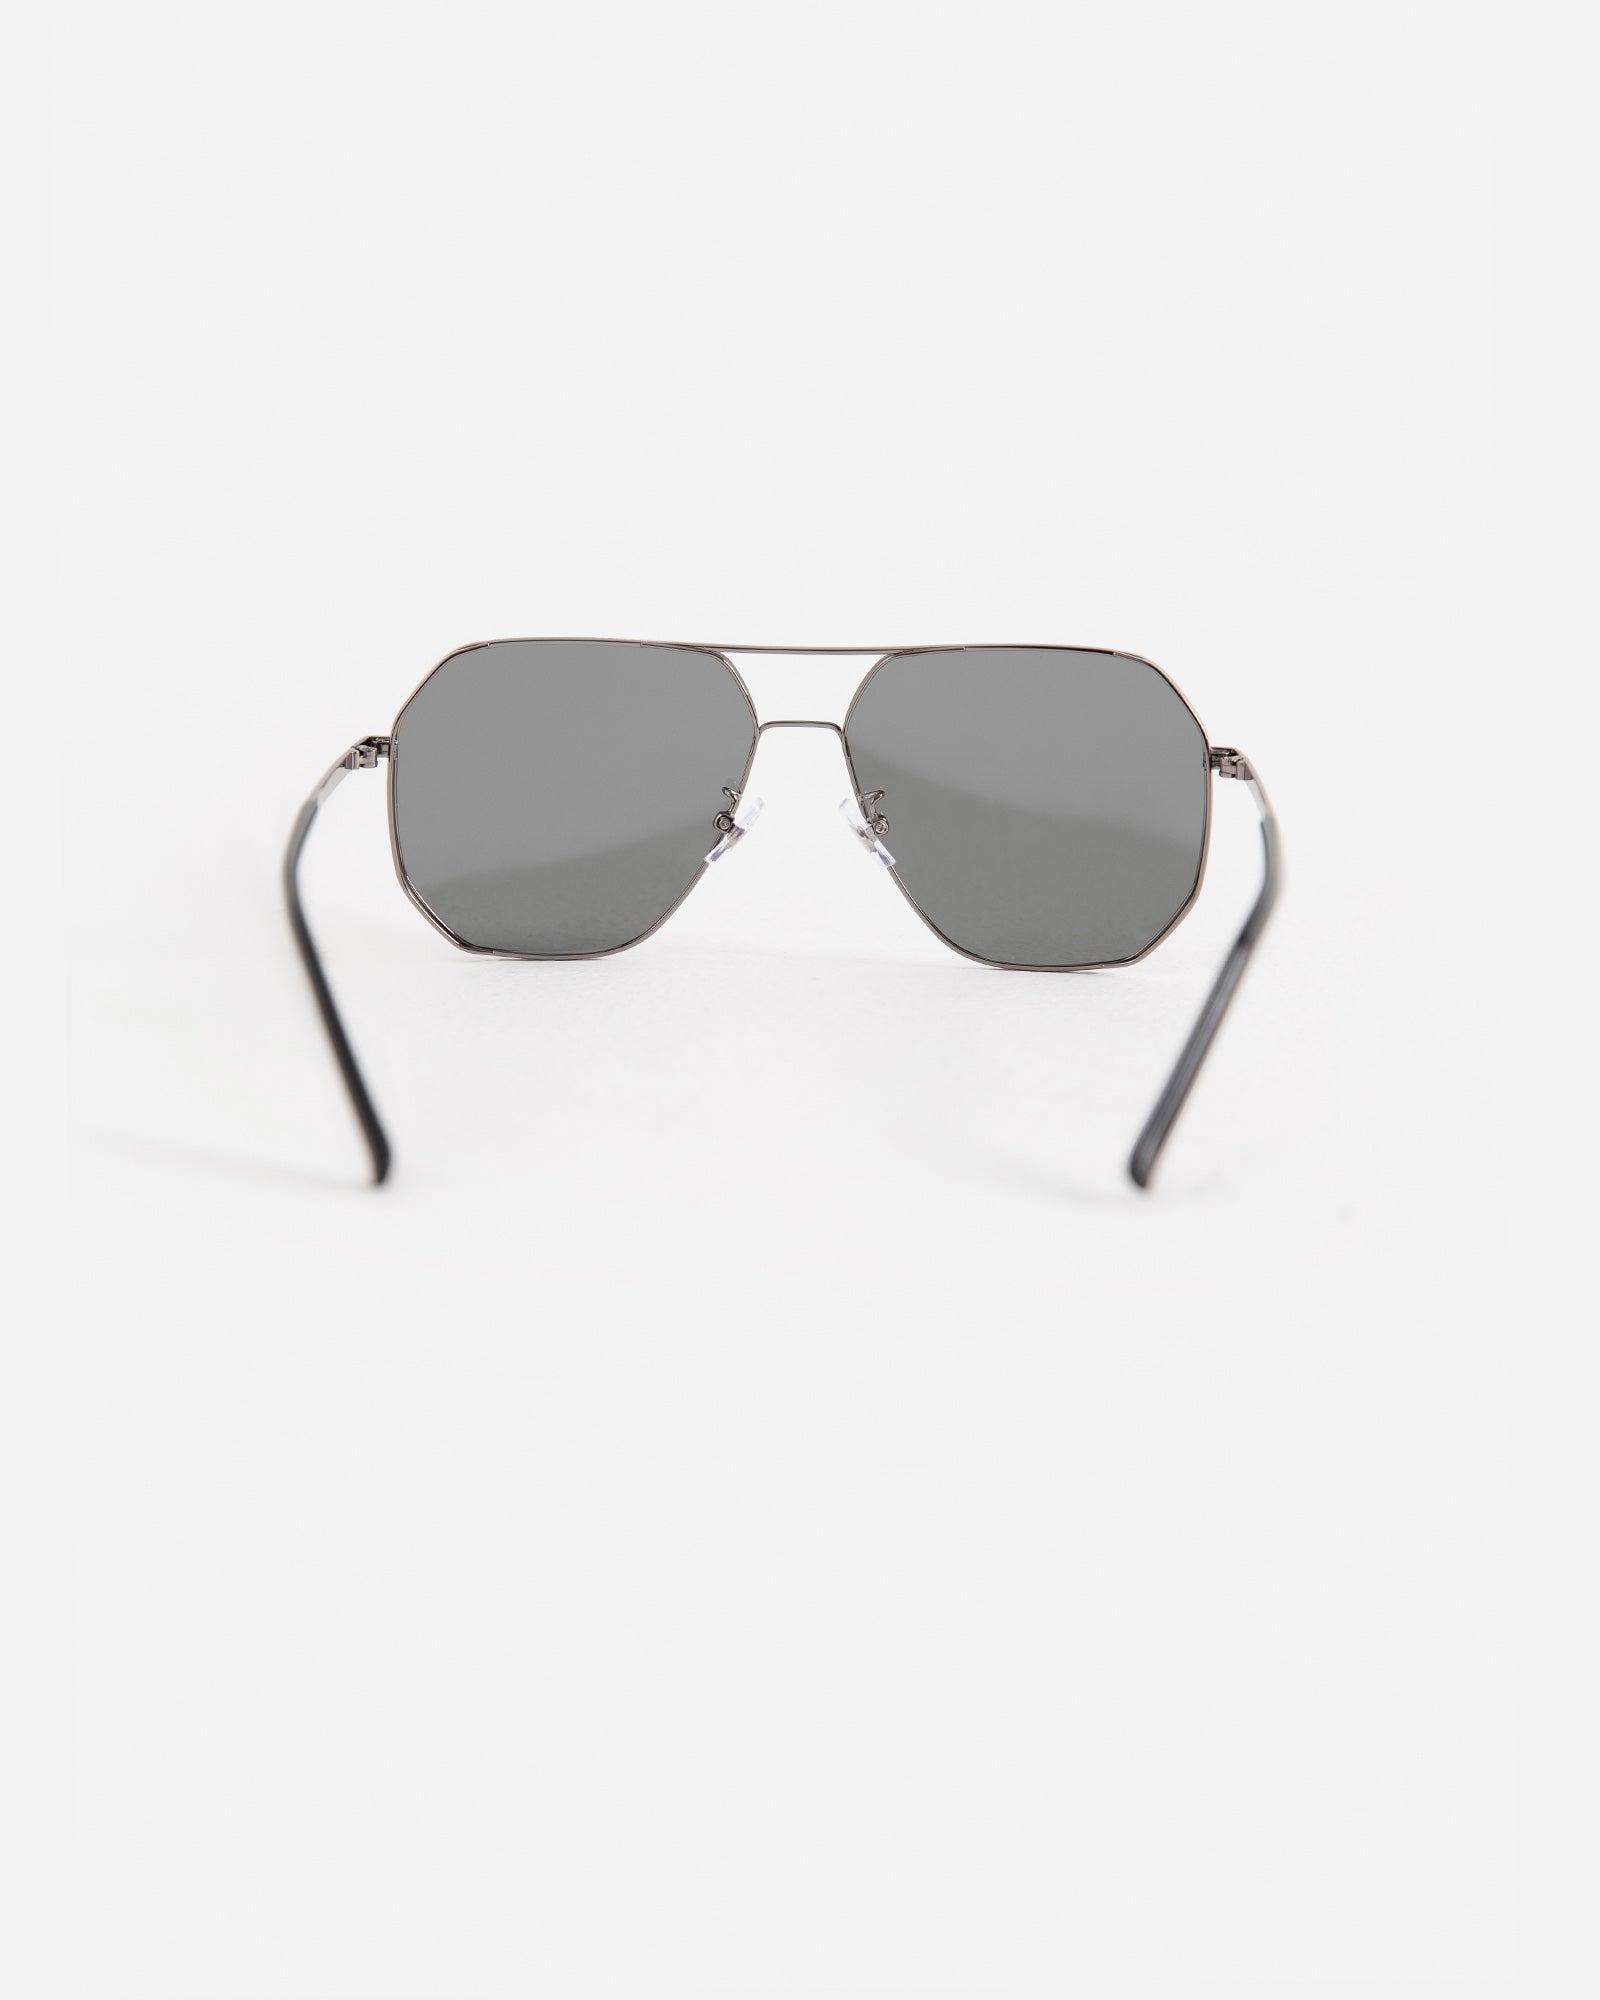 Edge-cut Sunglasses